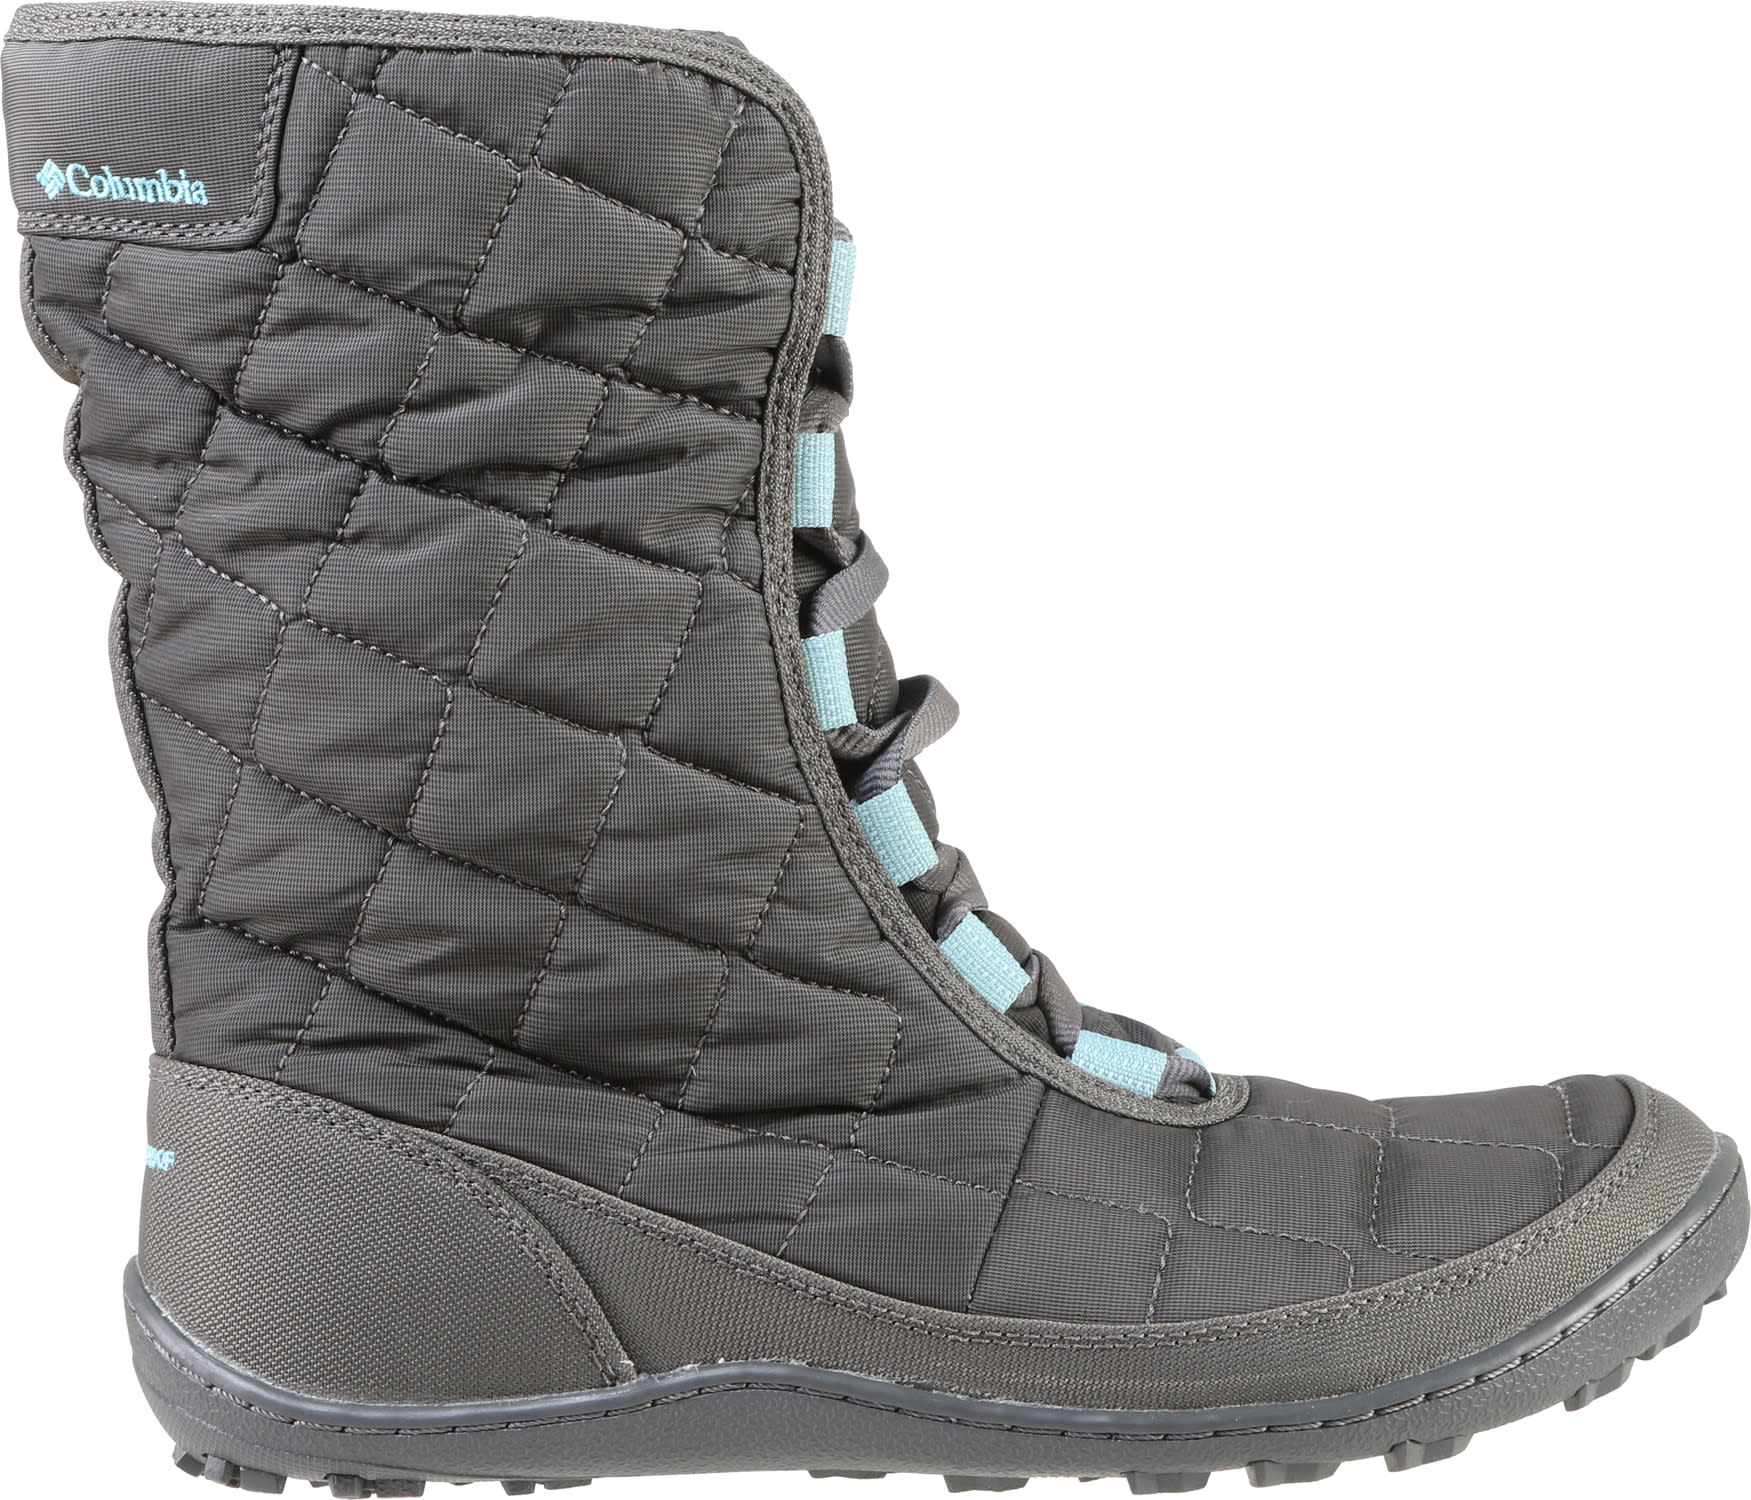 Columbia Crystal Mid Lace Thermal Coil Boots Womens